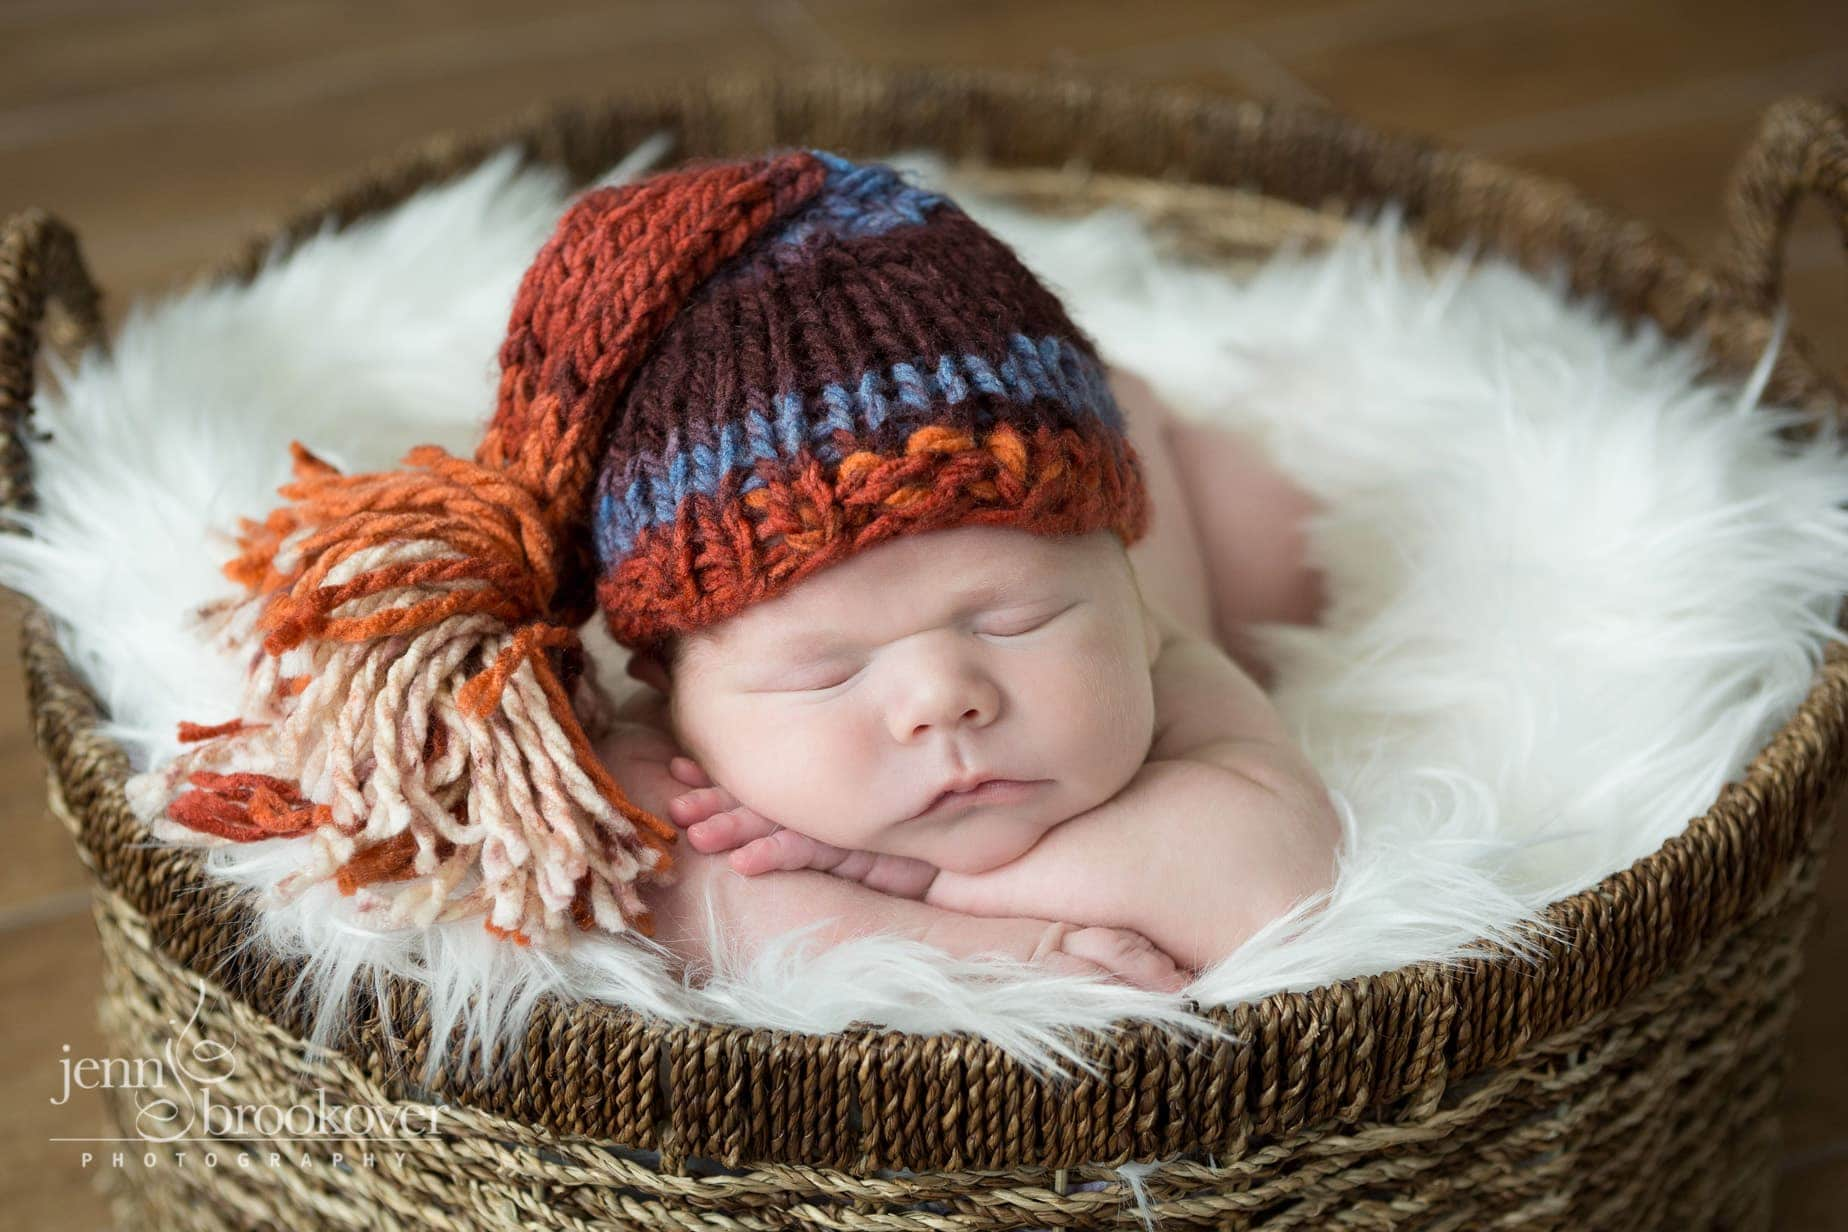 close up of newborn boy in knitted cap snuggling on fur during photo session